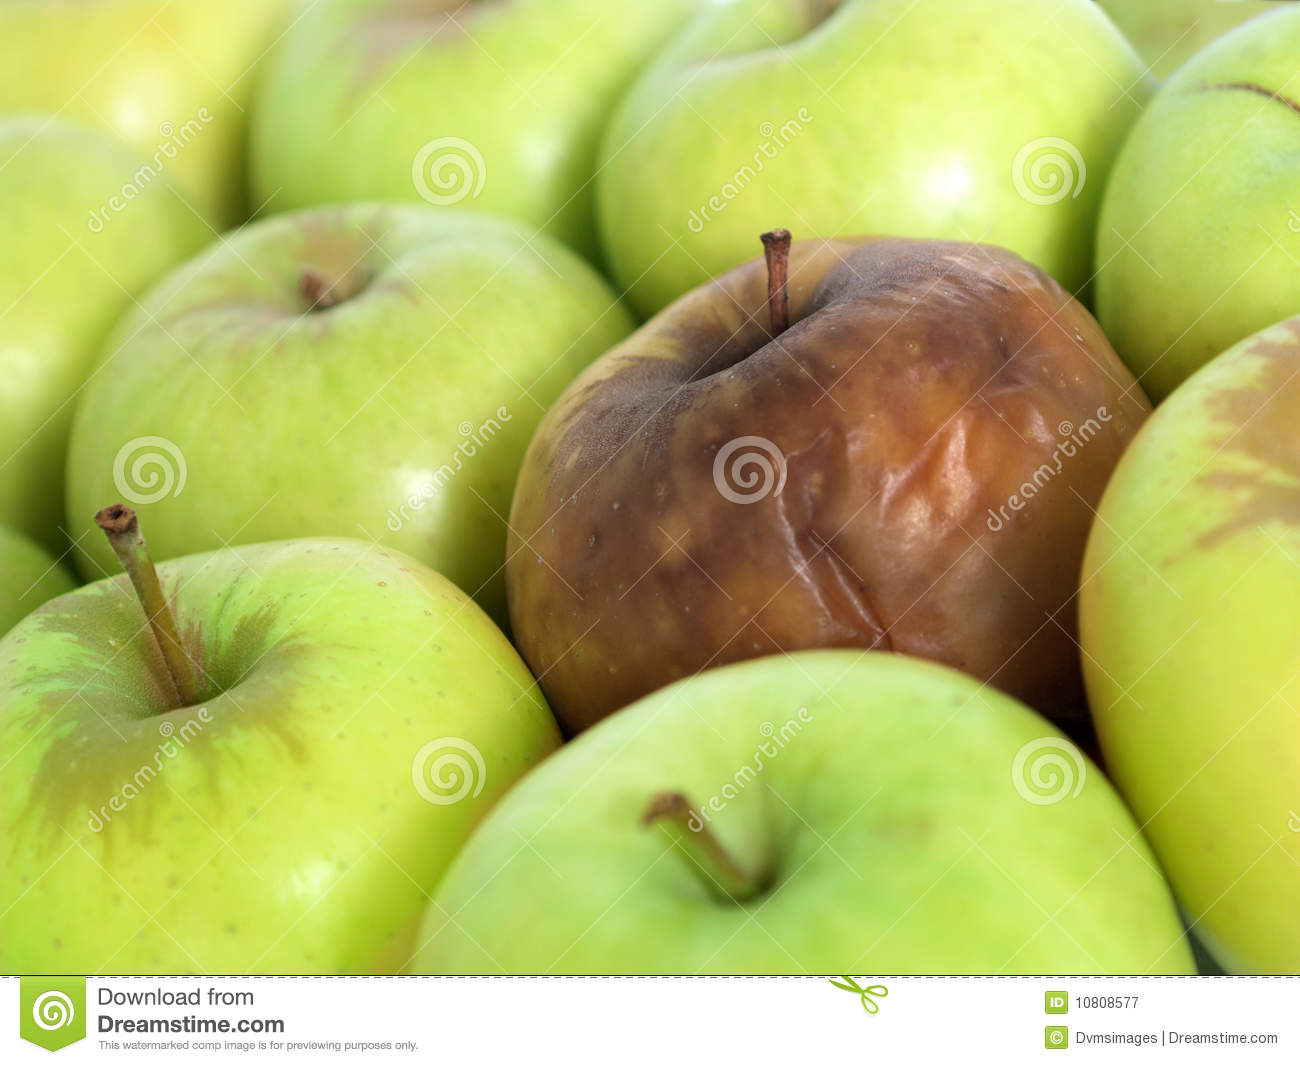 Bad apple in the bunch